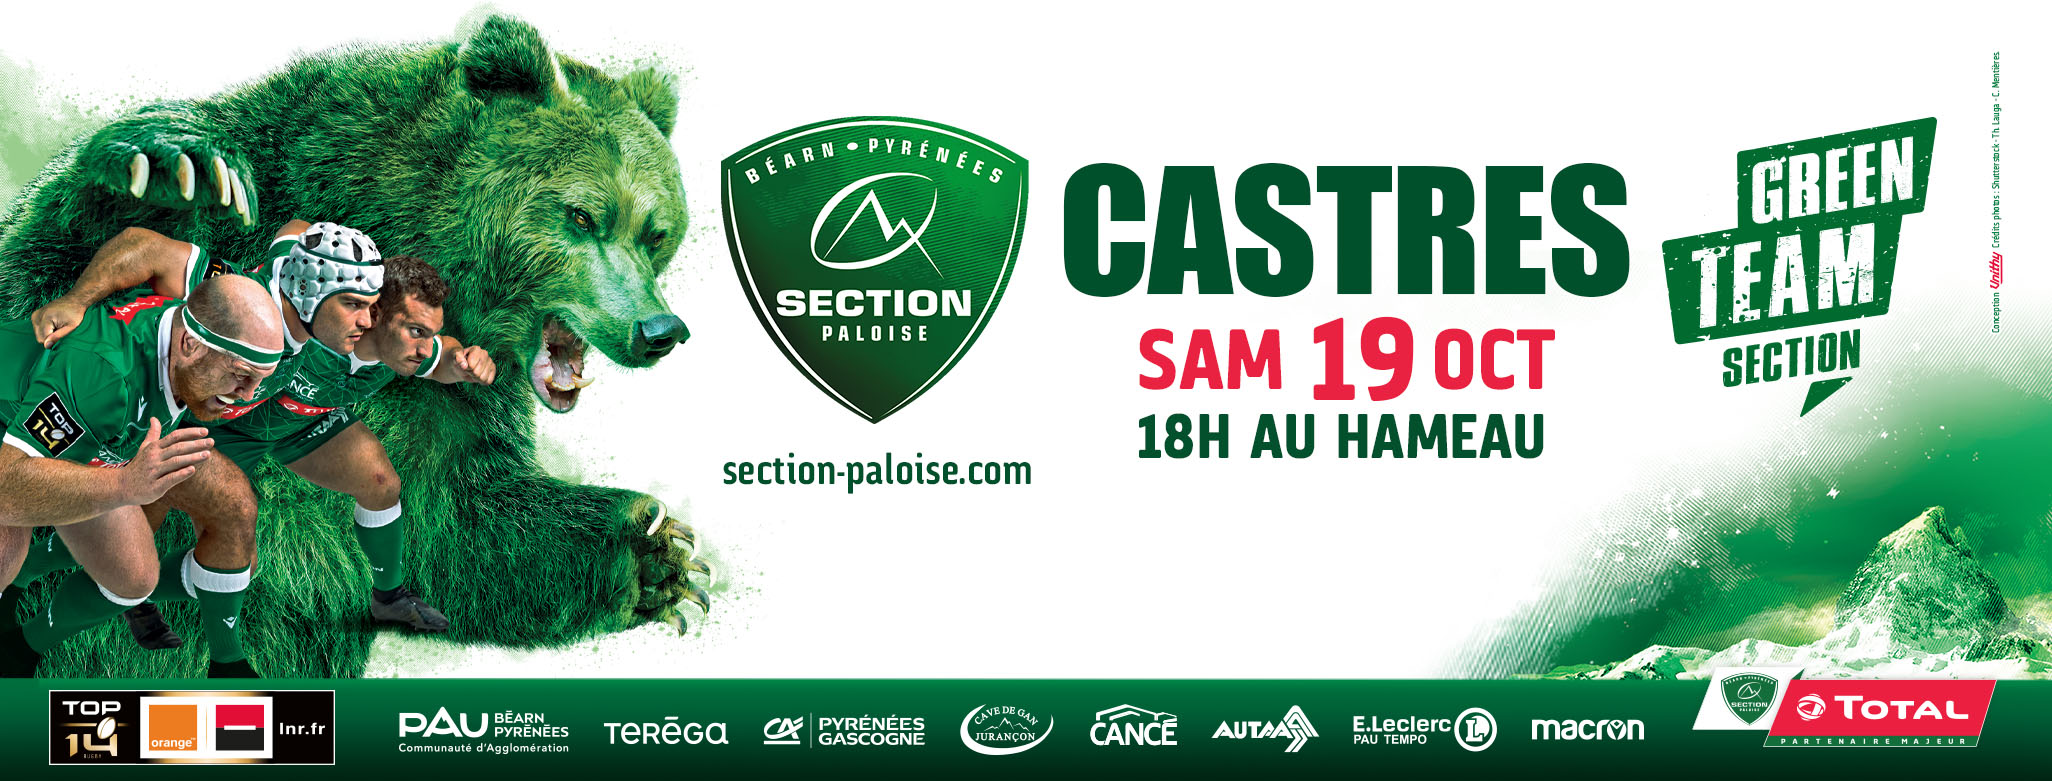 Section - Castres